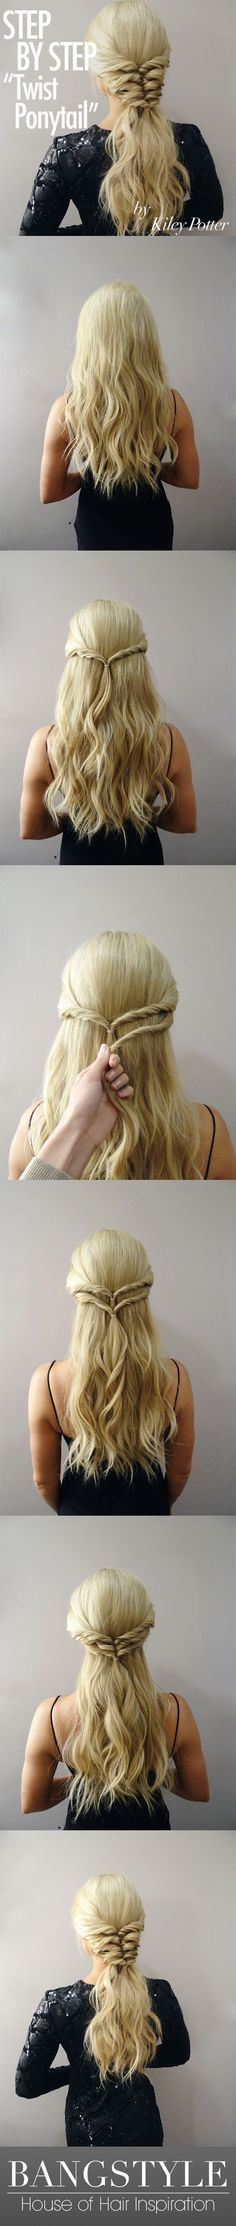 Twist ponytail hair tutorial. I think this one is doable!